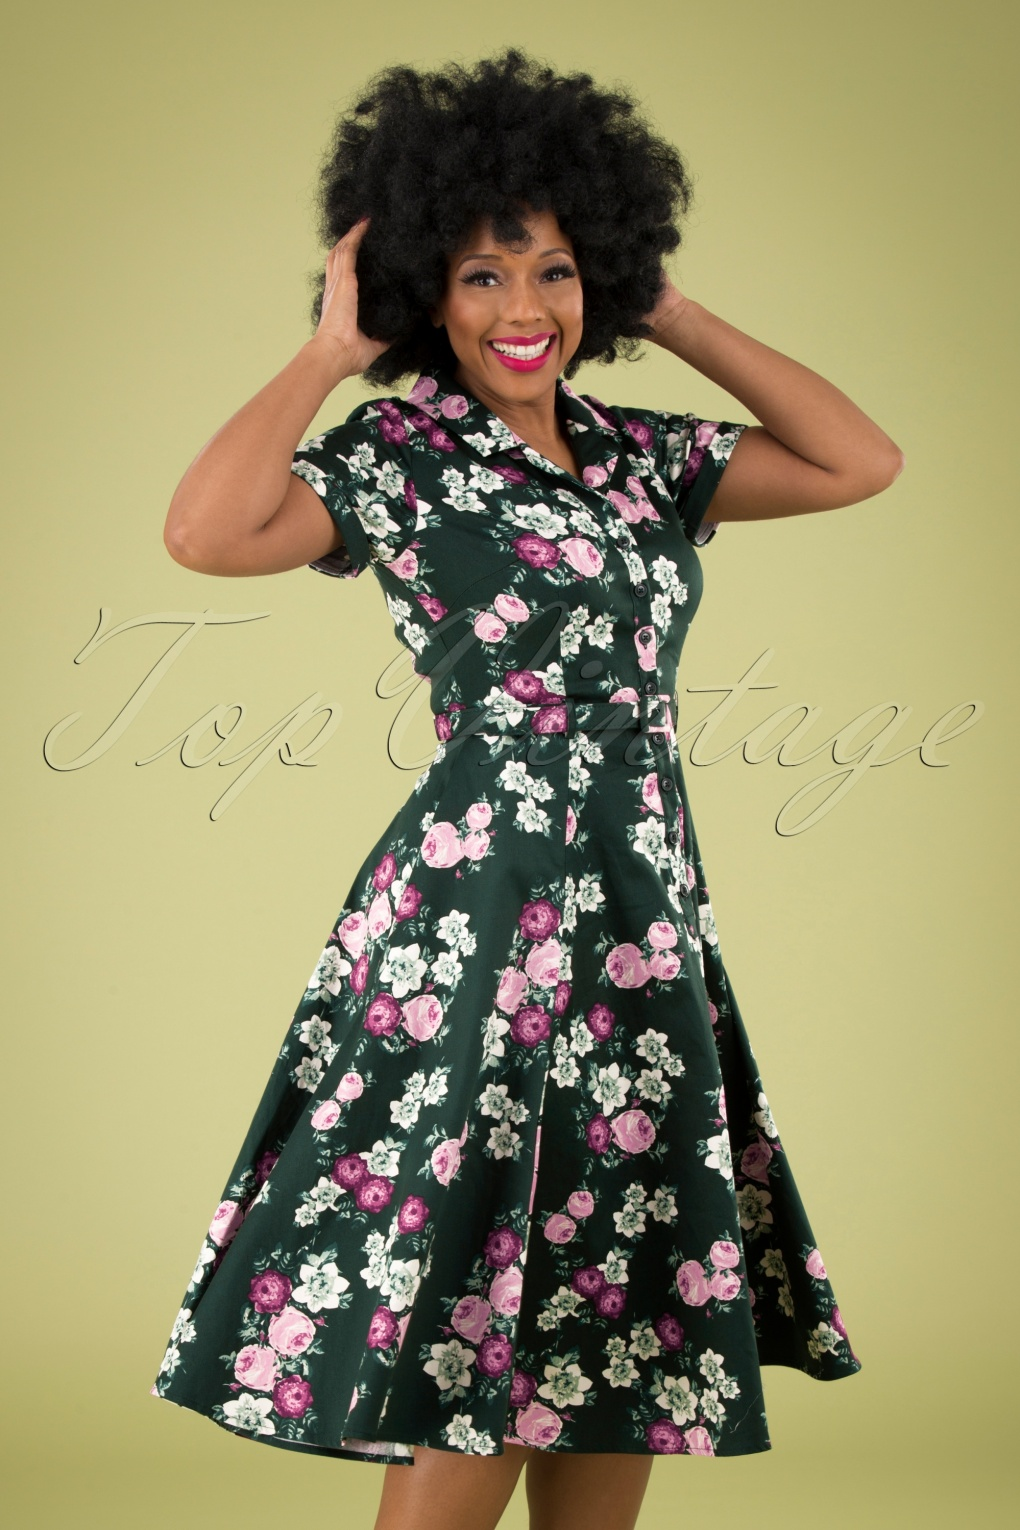 500 Vintage Style Dresses for Sale | Vintage Inspired Dresses 40s Caterina Vintage Bloom Swing Dress in Dark Green £67.82 AT vintagedancer.com